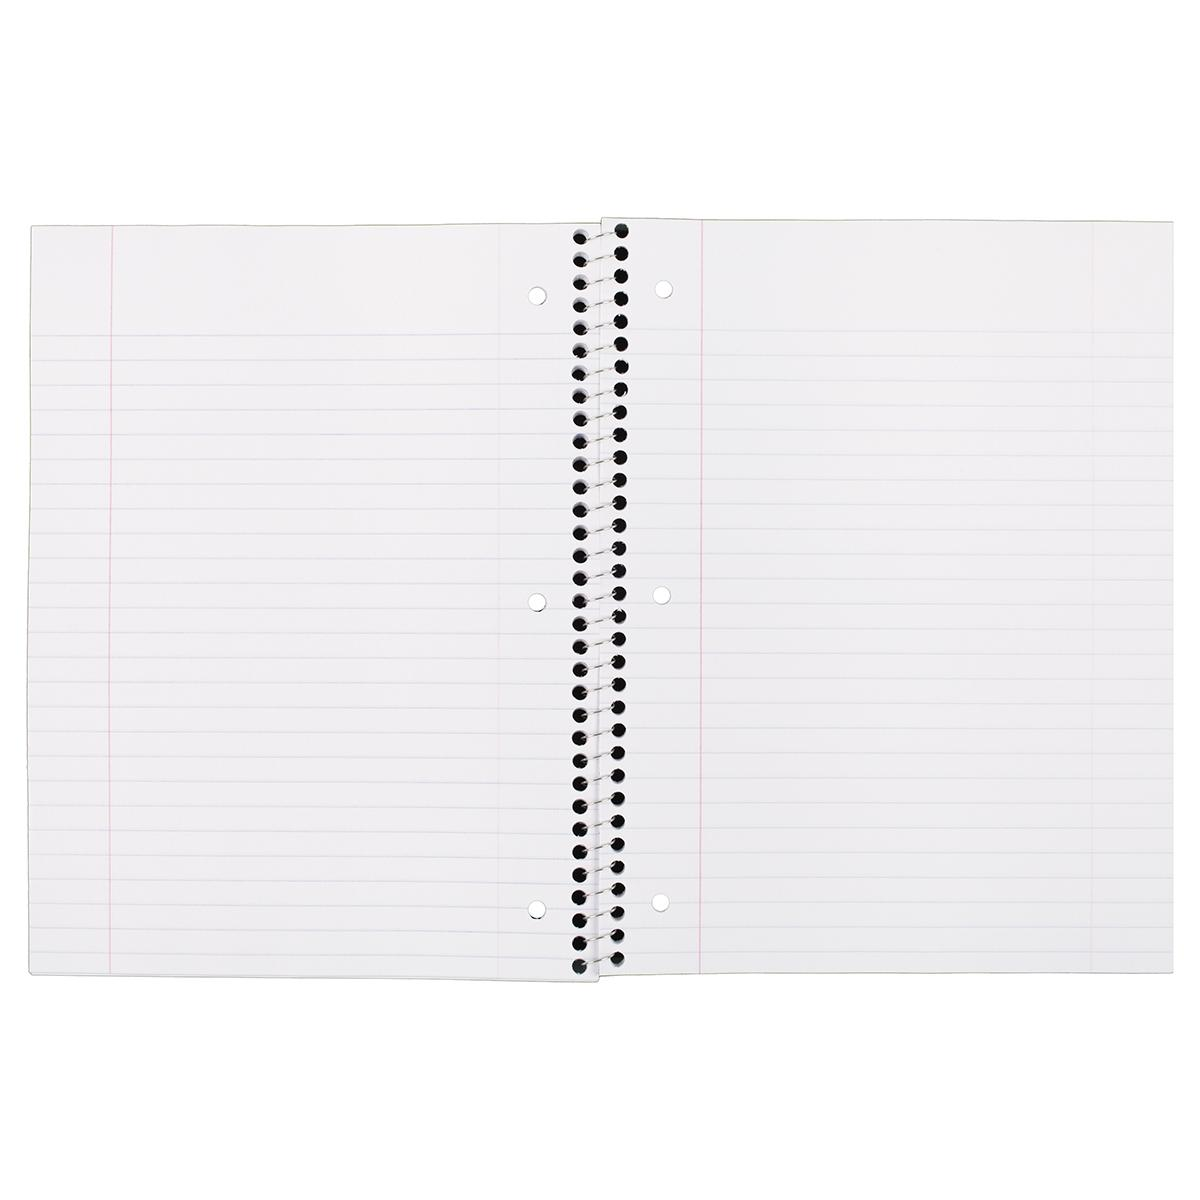 Amazon.com : Mead Spiral Notebooks, 1 Subject, Wide Ruled